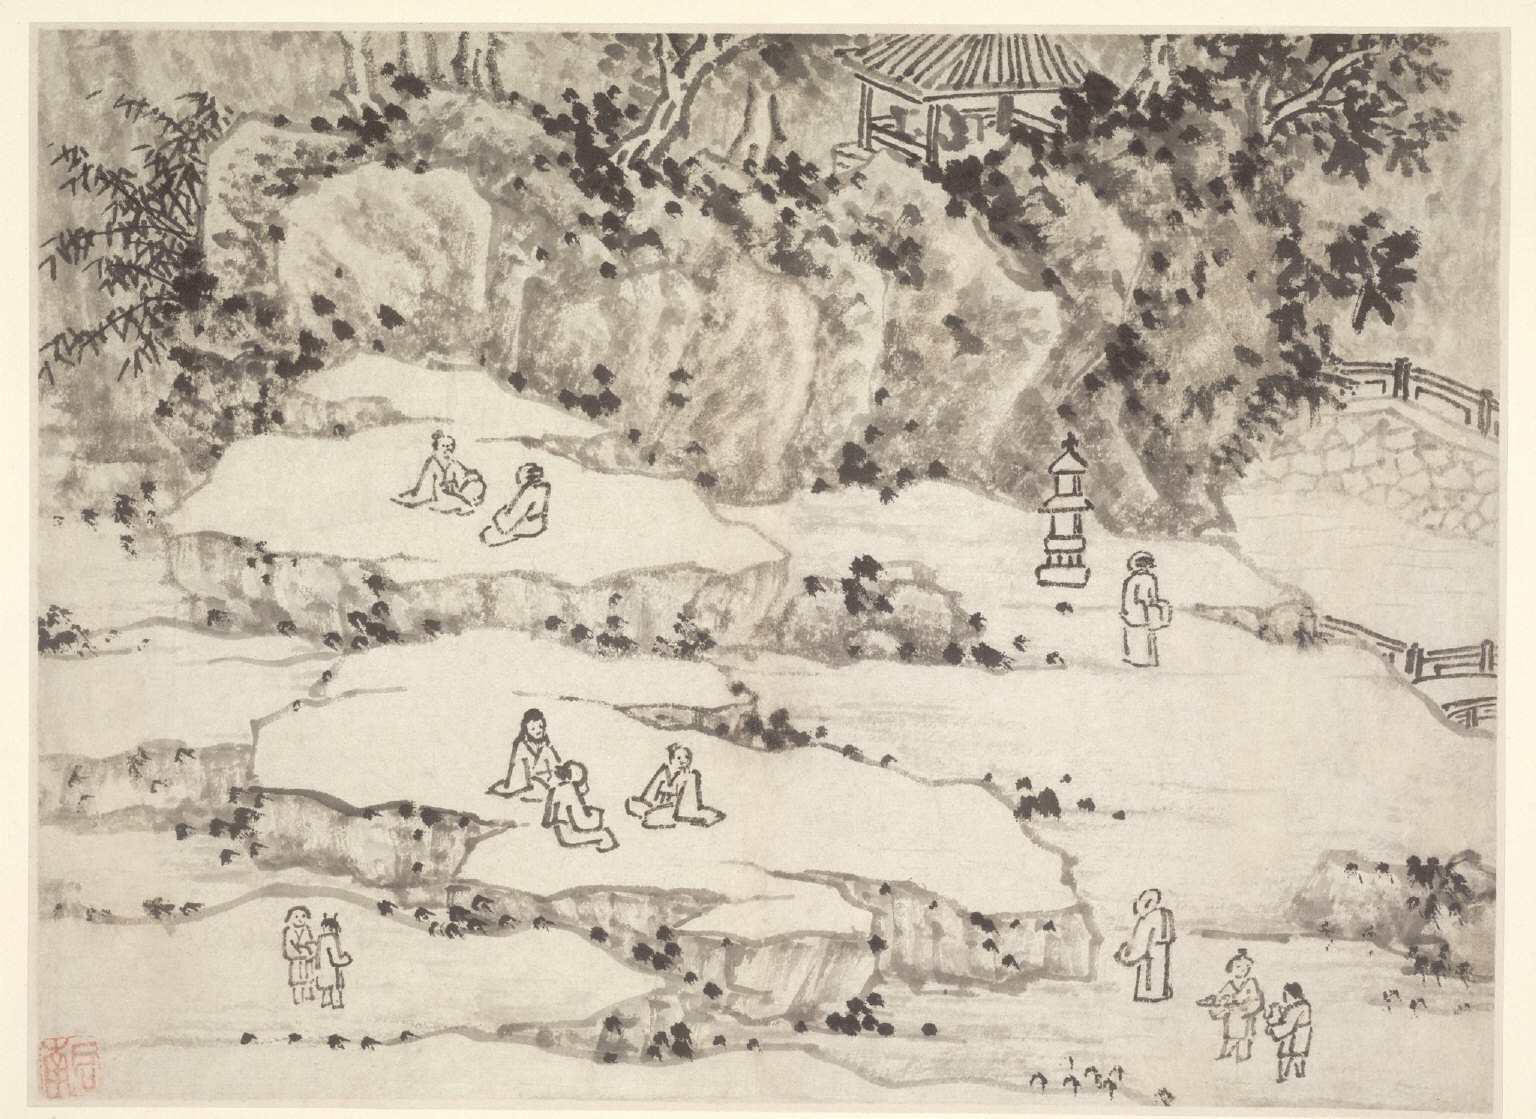 Twelve Views of Tiger Hill, Suchou: The Nodding Stone Terrace, Tiger Hill, and the Thousand-Man Seat